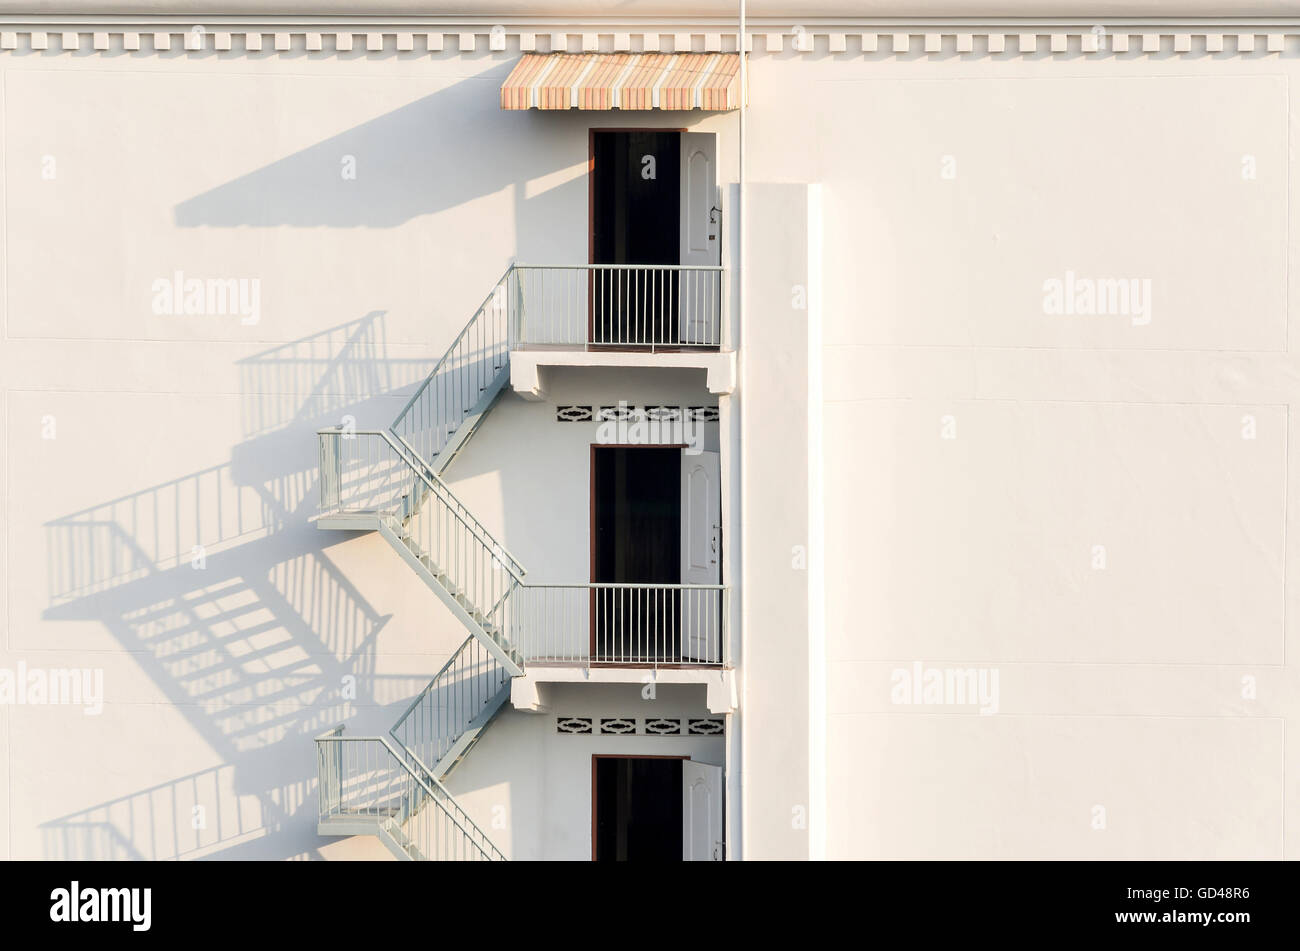 fire escape with afternoon shadows on exterior white wall. - Stock Image